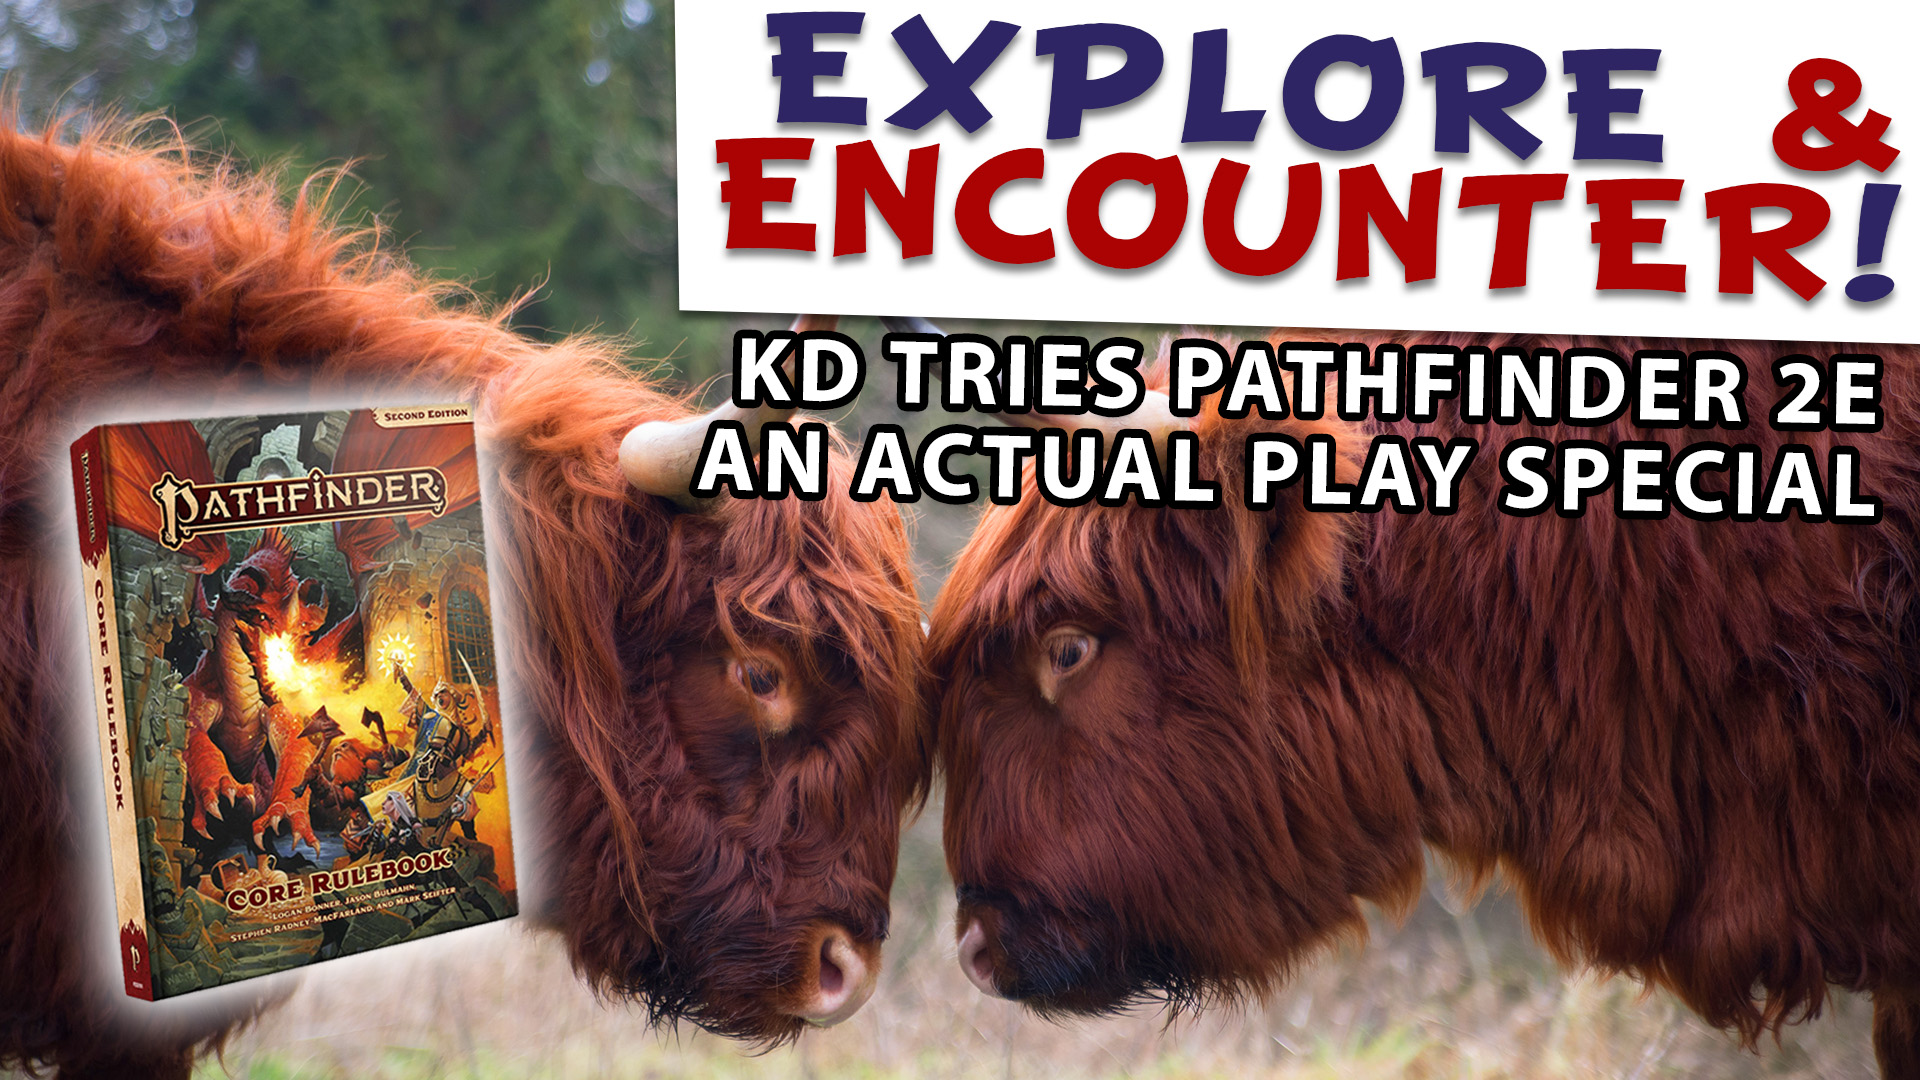 Explore & Encounter, KD Tries Pathfinder 2e - An Actual Play Special - Two Yaks head butting behind an image of the Pathfinder Roleplaying Game 2nd Edition core rulebook